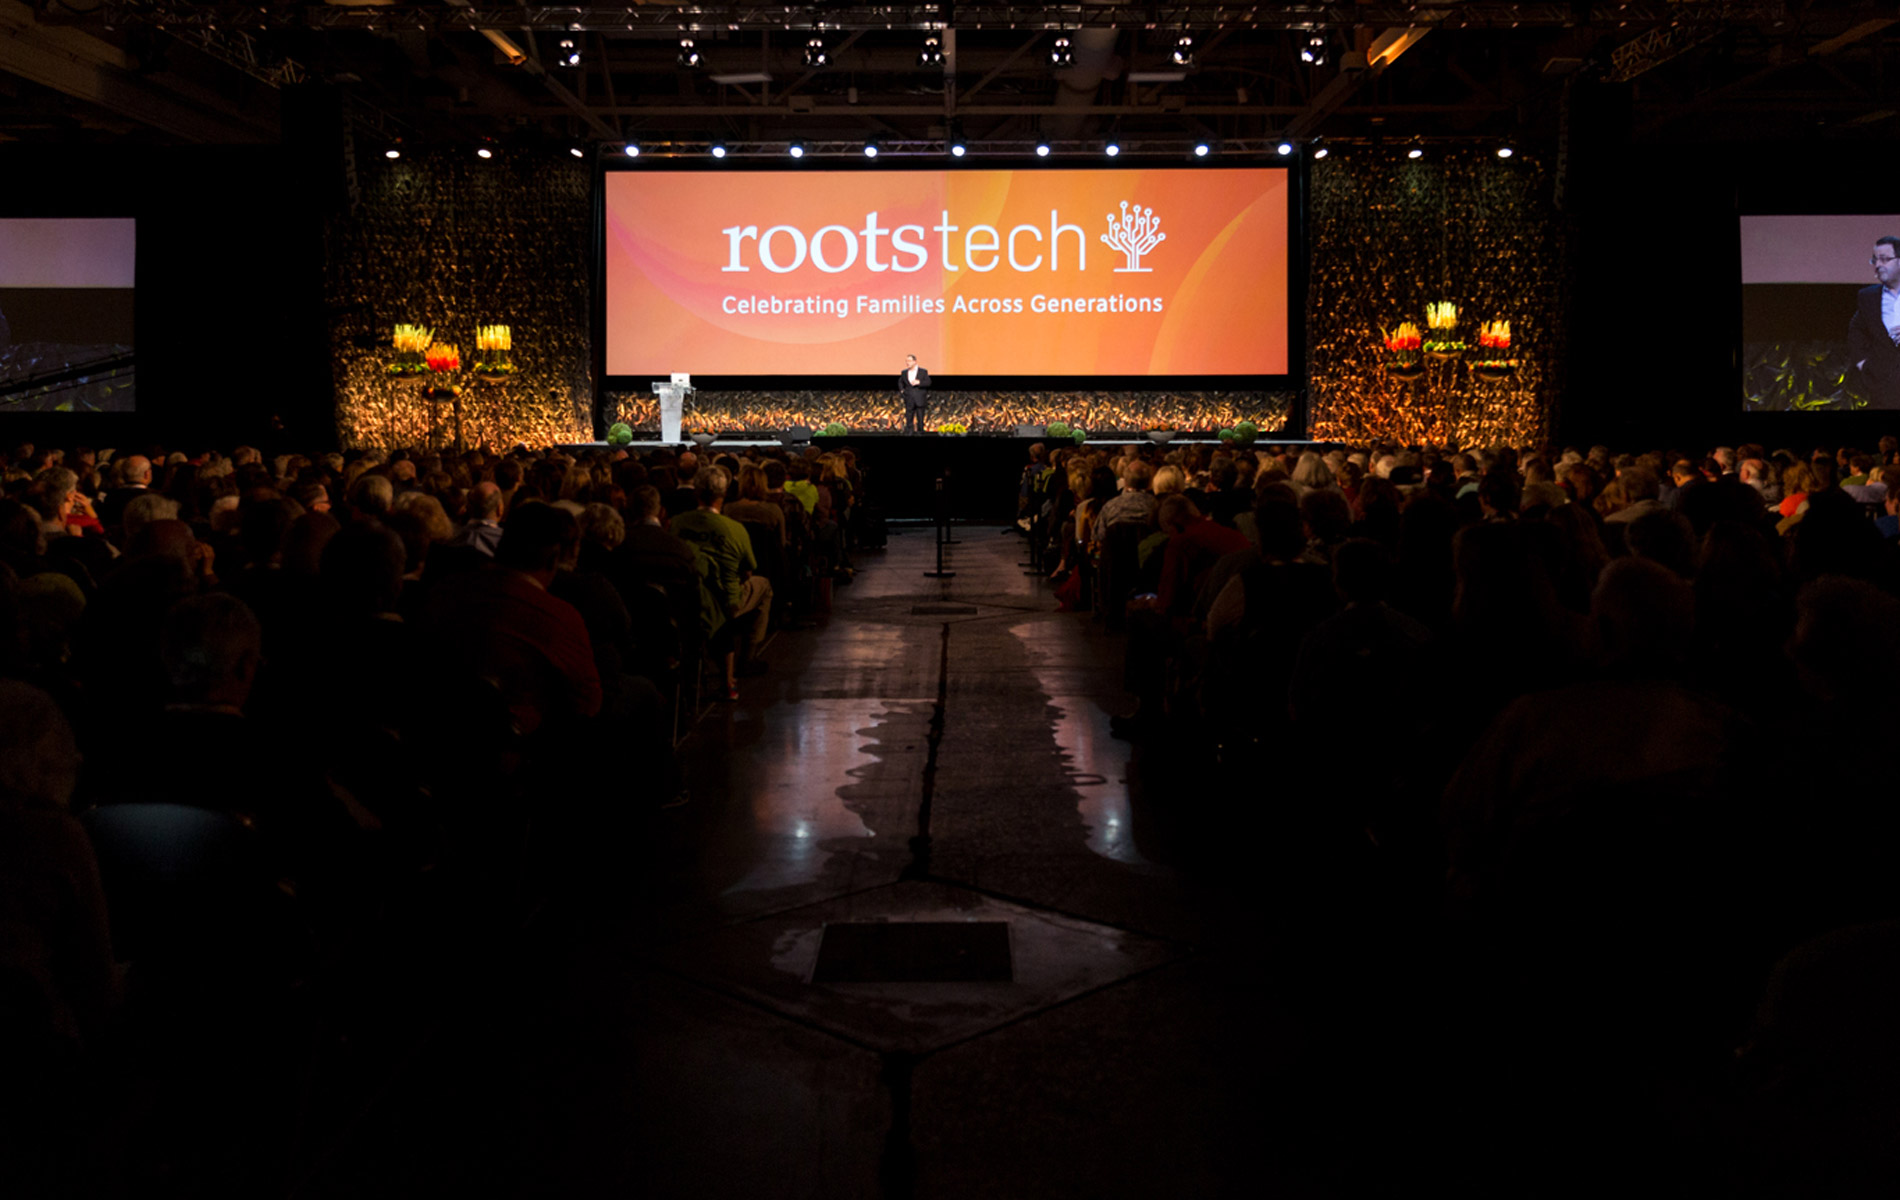 The stage at RootsTech